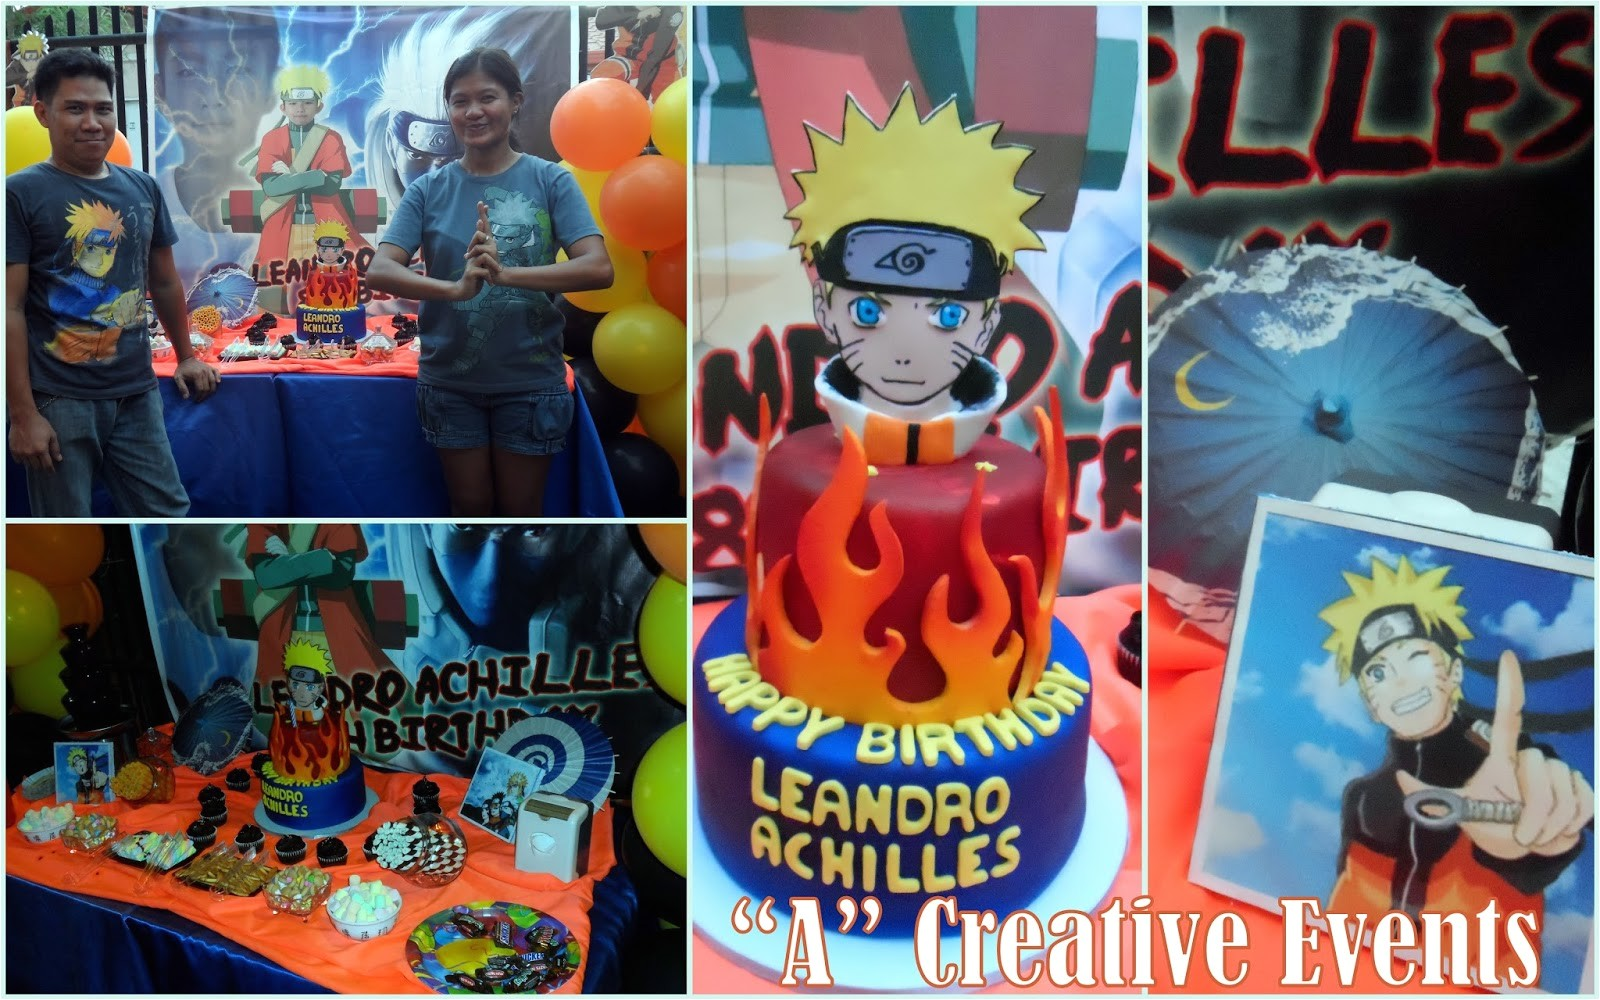 naruto themed party for leandro achilles